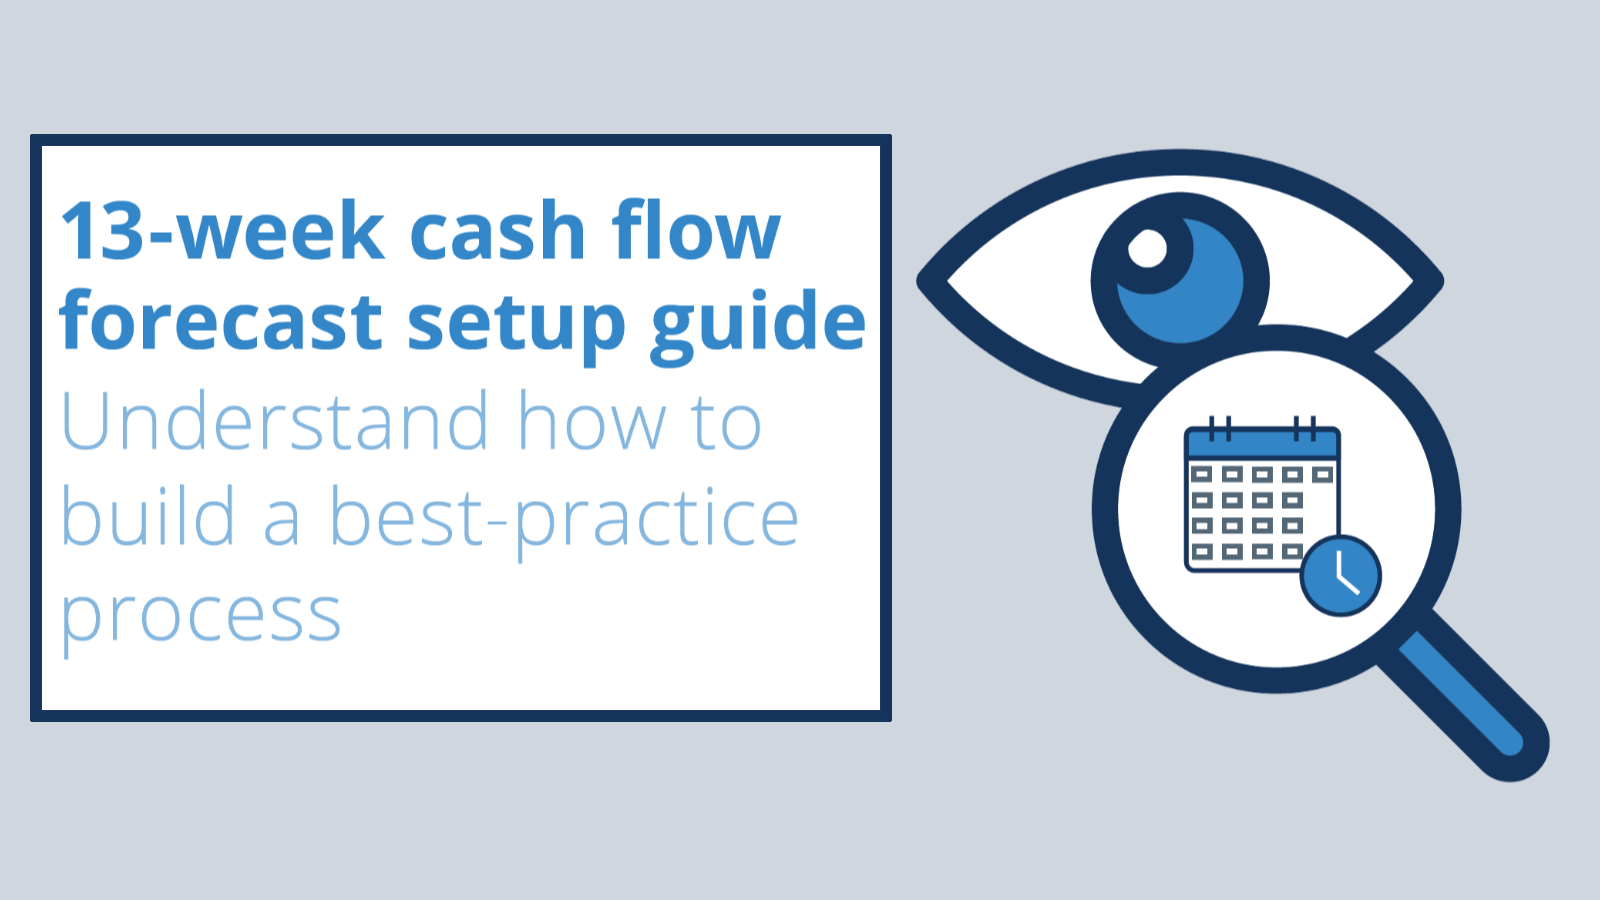 13 week cash flow forecast setup guide